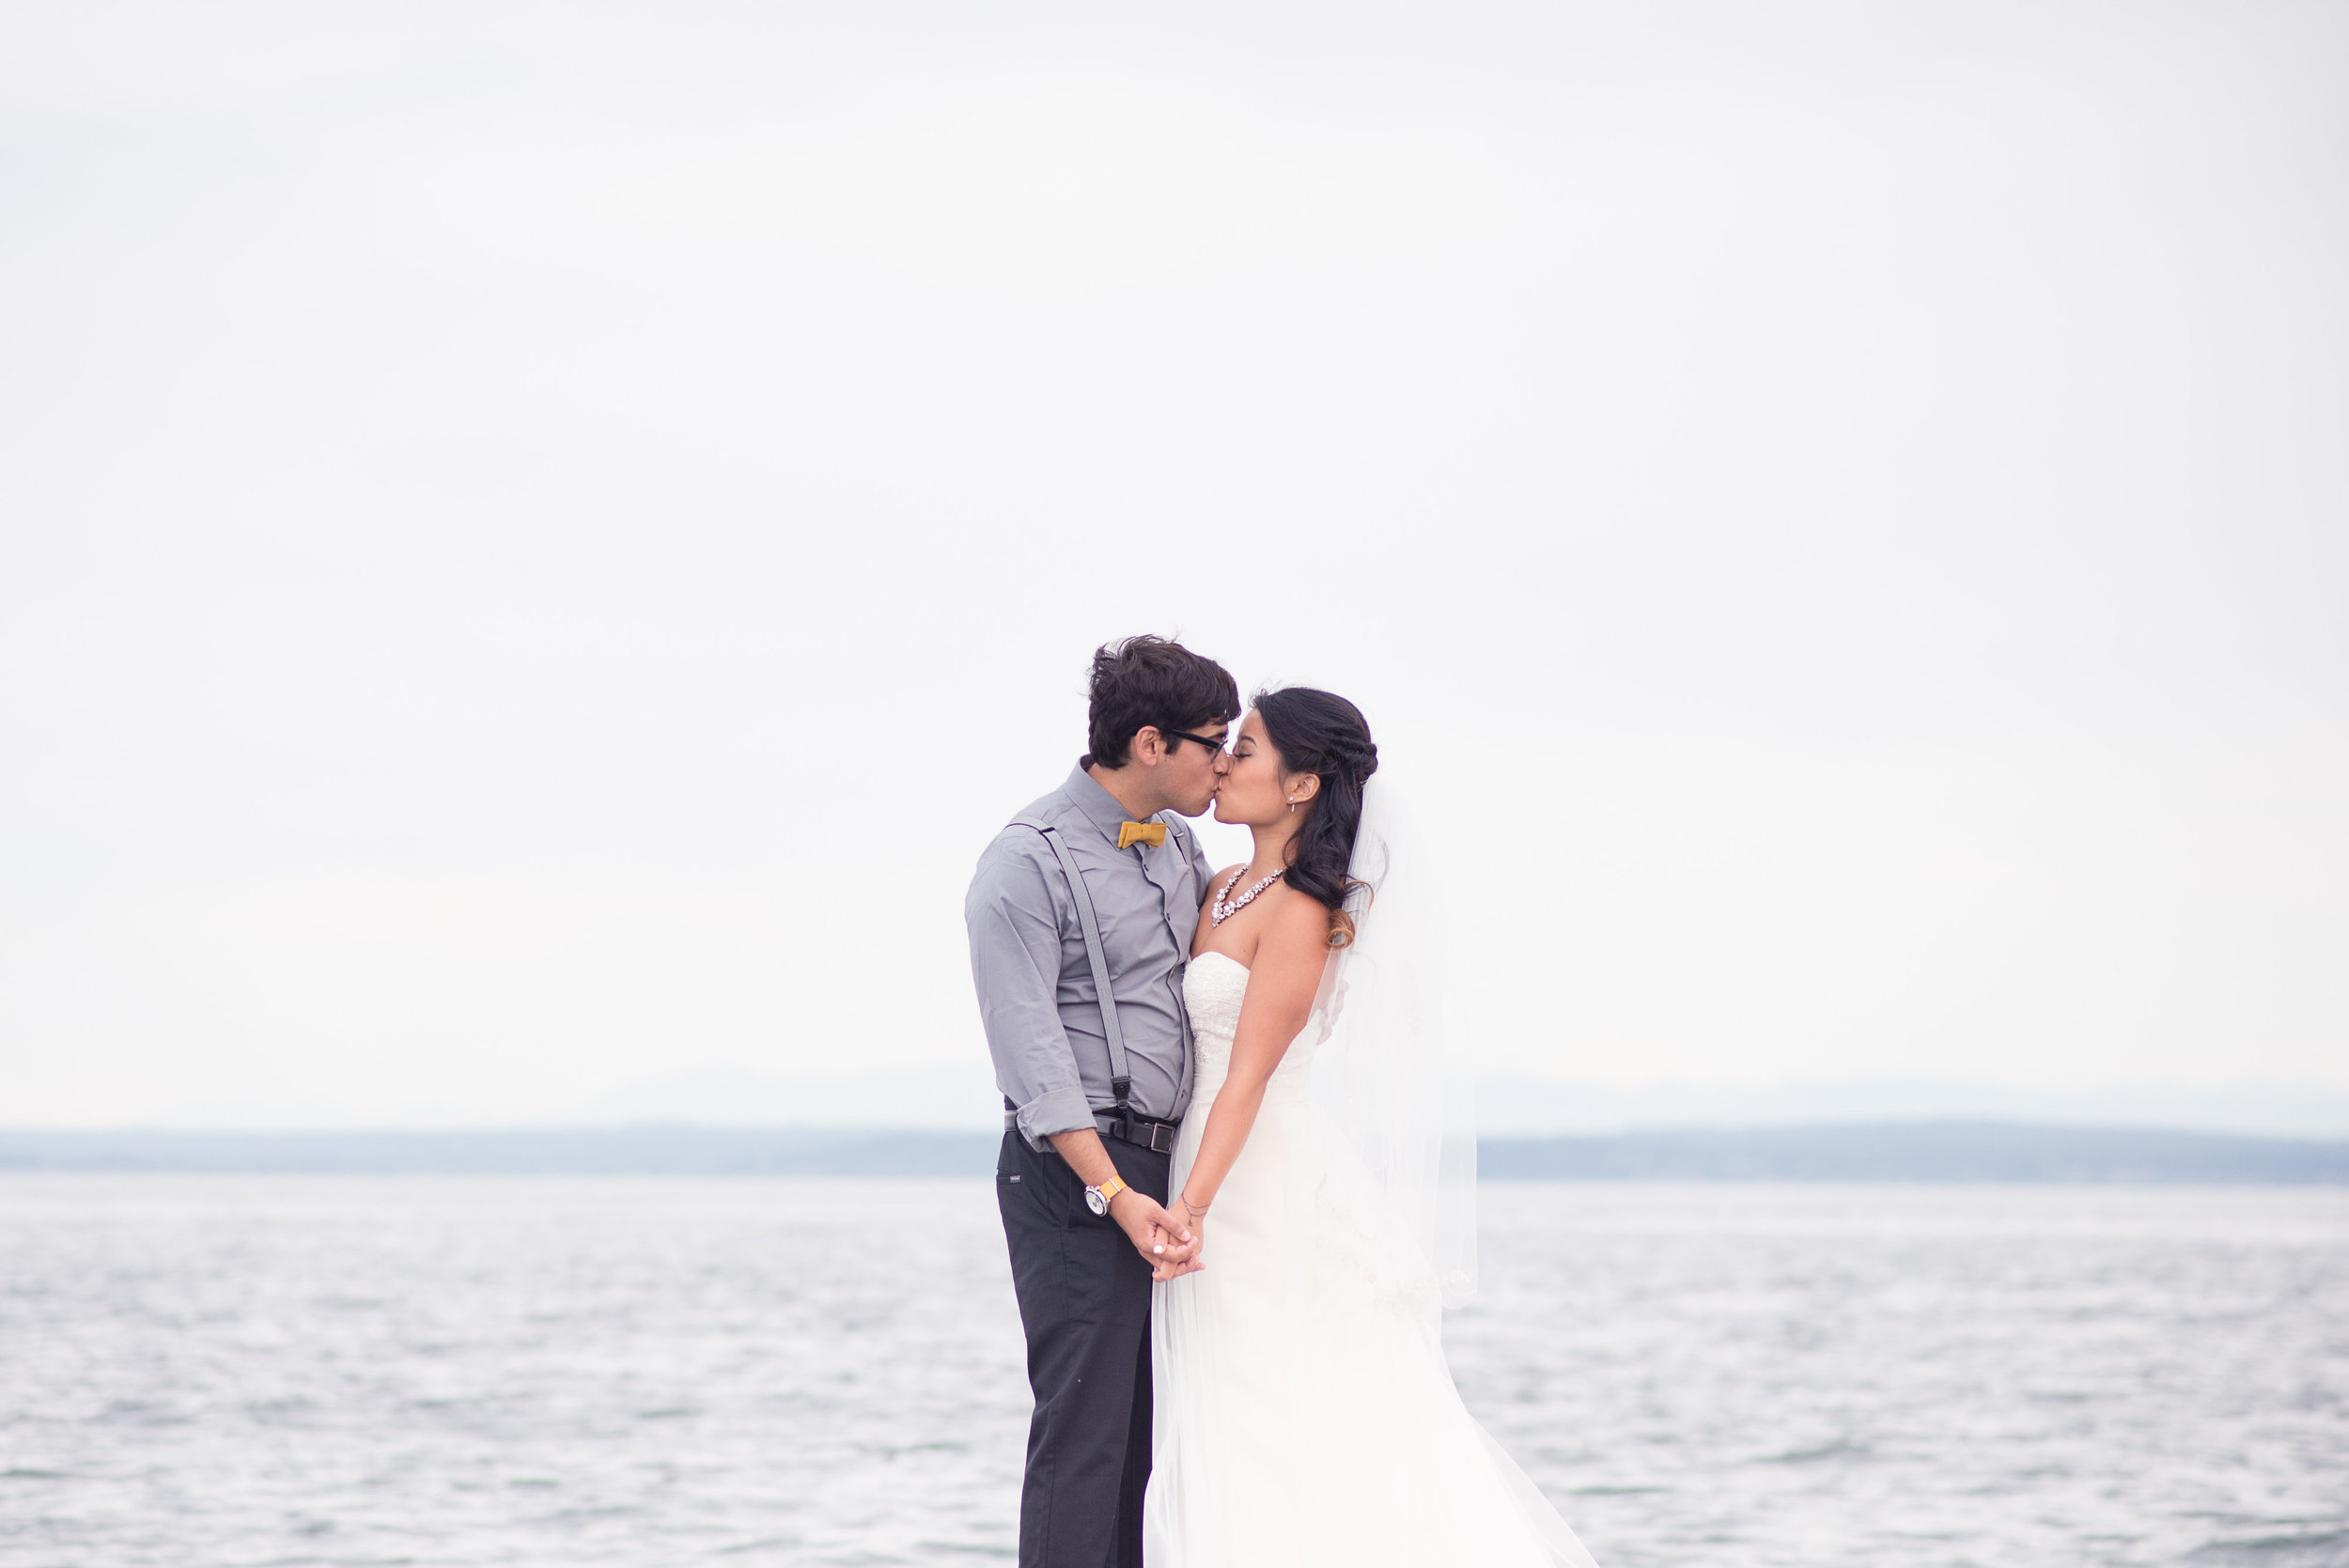 Kristine Johnny By Cleland Studios and Riffel Photography-2 Couple Cle-0043.jpg